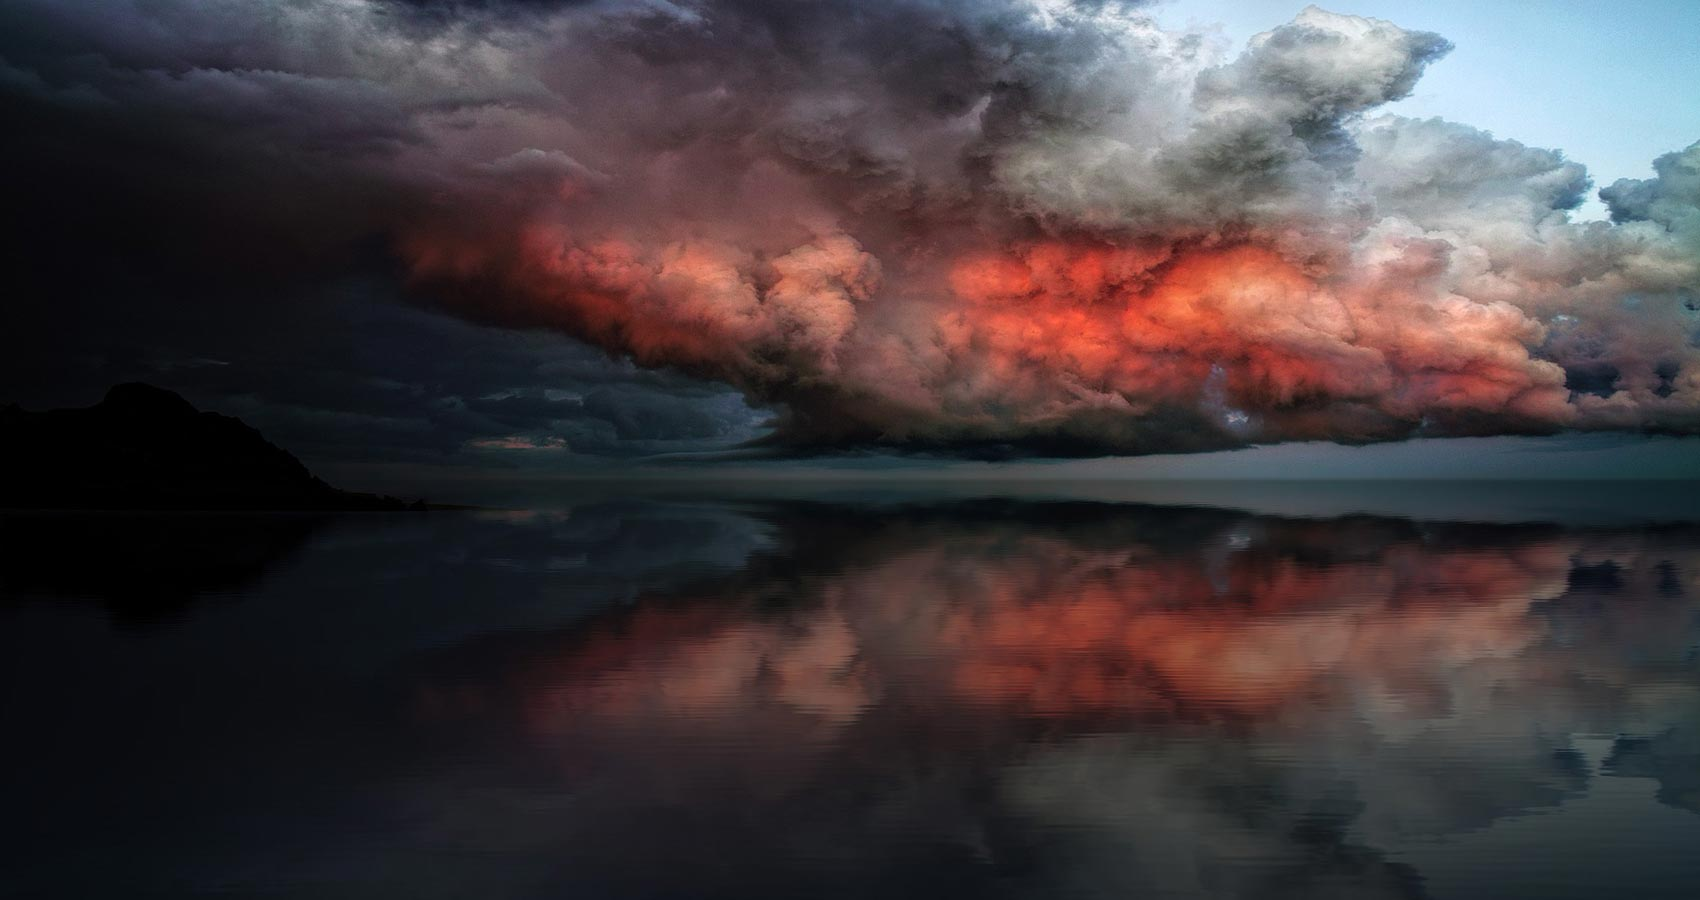 Storm's Symphony, a poem written by Mike Turner at Spillwords.com